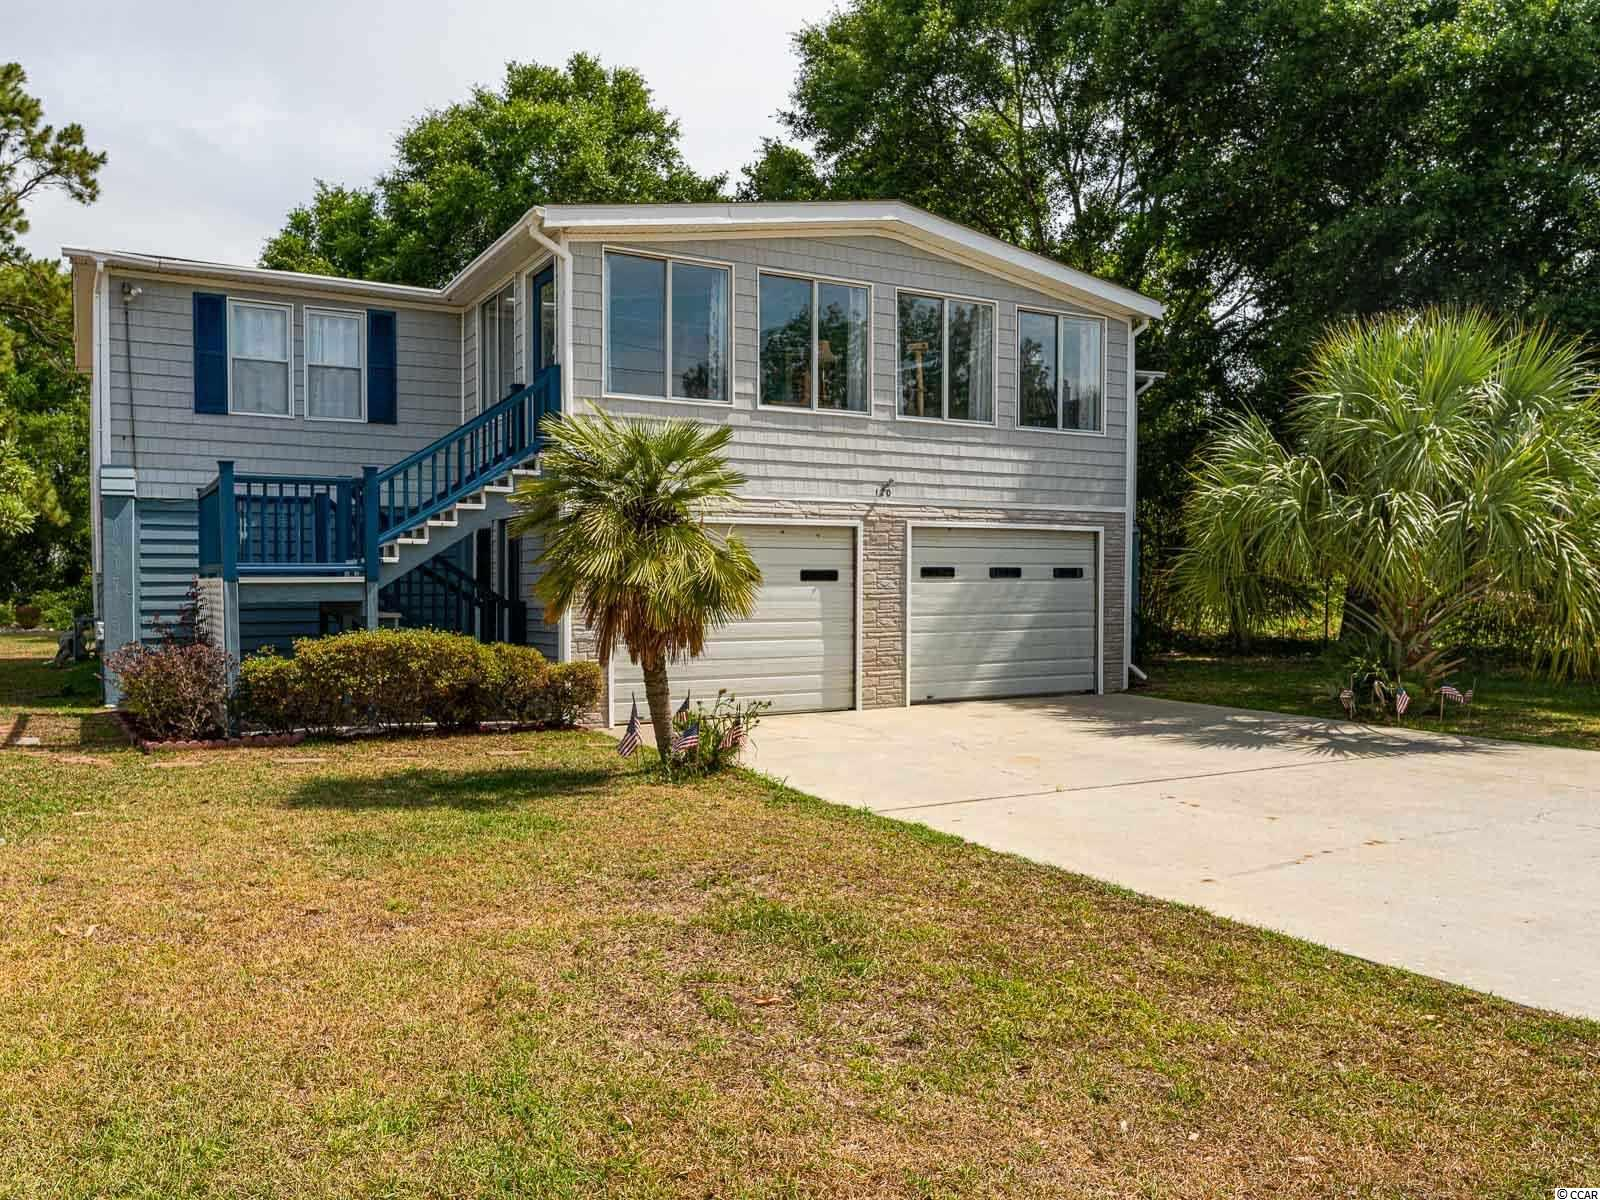 THIS is the perfect spot for Inlet living at it's best with the convenience of parking your boat/RV/Golf cart right at home!  This home is a manufactured home set up as a raised beach home in a quiet NO HOA community.  You can Golf Cart to the popular Murrells Inlet Marsh Walk with great restaurants, live music, and shopping!  Plus you have access to a public boat ramp at the south end of the Marsh Walk!  It is also just 4 miles to the Garden City Pier and beaches, as well as 7 miles to Brookgreen Gardens and Huntington Beach State Park!  There is a bedroom, walk in closet, and full bathroom with separate entrance on the ground floor perfect for a Mother in law suite, or college student living at home.  The upstairs main level opens into a bright and airy Carolina room with views of the Inlet.  Pass through the stylish sliding door to the open concept living room, kitchen, and dining room.  This house also offers a split bedroom plan with owner's suite on one side including en-suite bathroom, and 2 more bedrooms and full bath on the other side.  All 4 bedrooms offer walk in closets.  There is a spacious back deck with a patio underneath offering plenty of options for sitting outside and enjoying your quiet backyard.  Laundry as well as a large storage room is completely enclosed on the ground level adjacent to ample under-house parking for 3-4 cars with garage doors.  The driveway easily accommodates 4 more vehicles and the detached carports allow for RV/Boat/Golf Cart parking/storage with no restrictions.  The lawn irrigation system works by drawing water from the retention pond behind the house so it doesn't run up your water bill!  There is a handicap chair lift on the back deck steps as well as an elevator.  The elevator is not operational, buyer can either have it repaired or the neighbor is happy to remove it at no cost if buyer doesn't want it (the elevator was added on but did not have a building permit, owners used it previously, but have not used it in a f